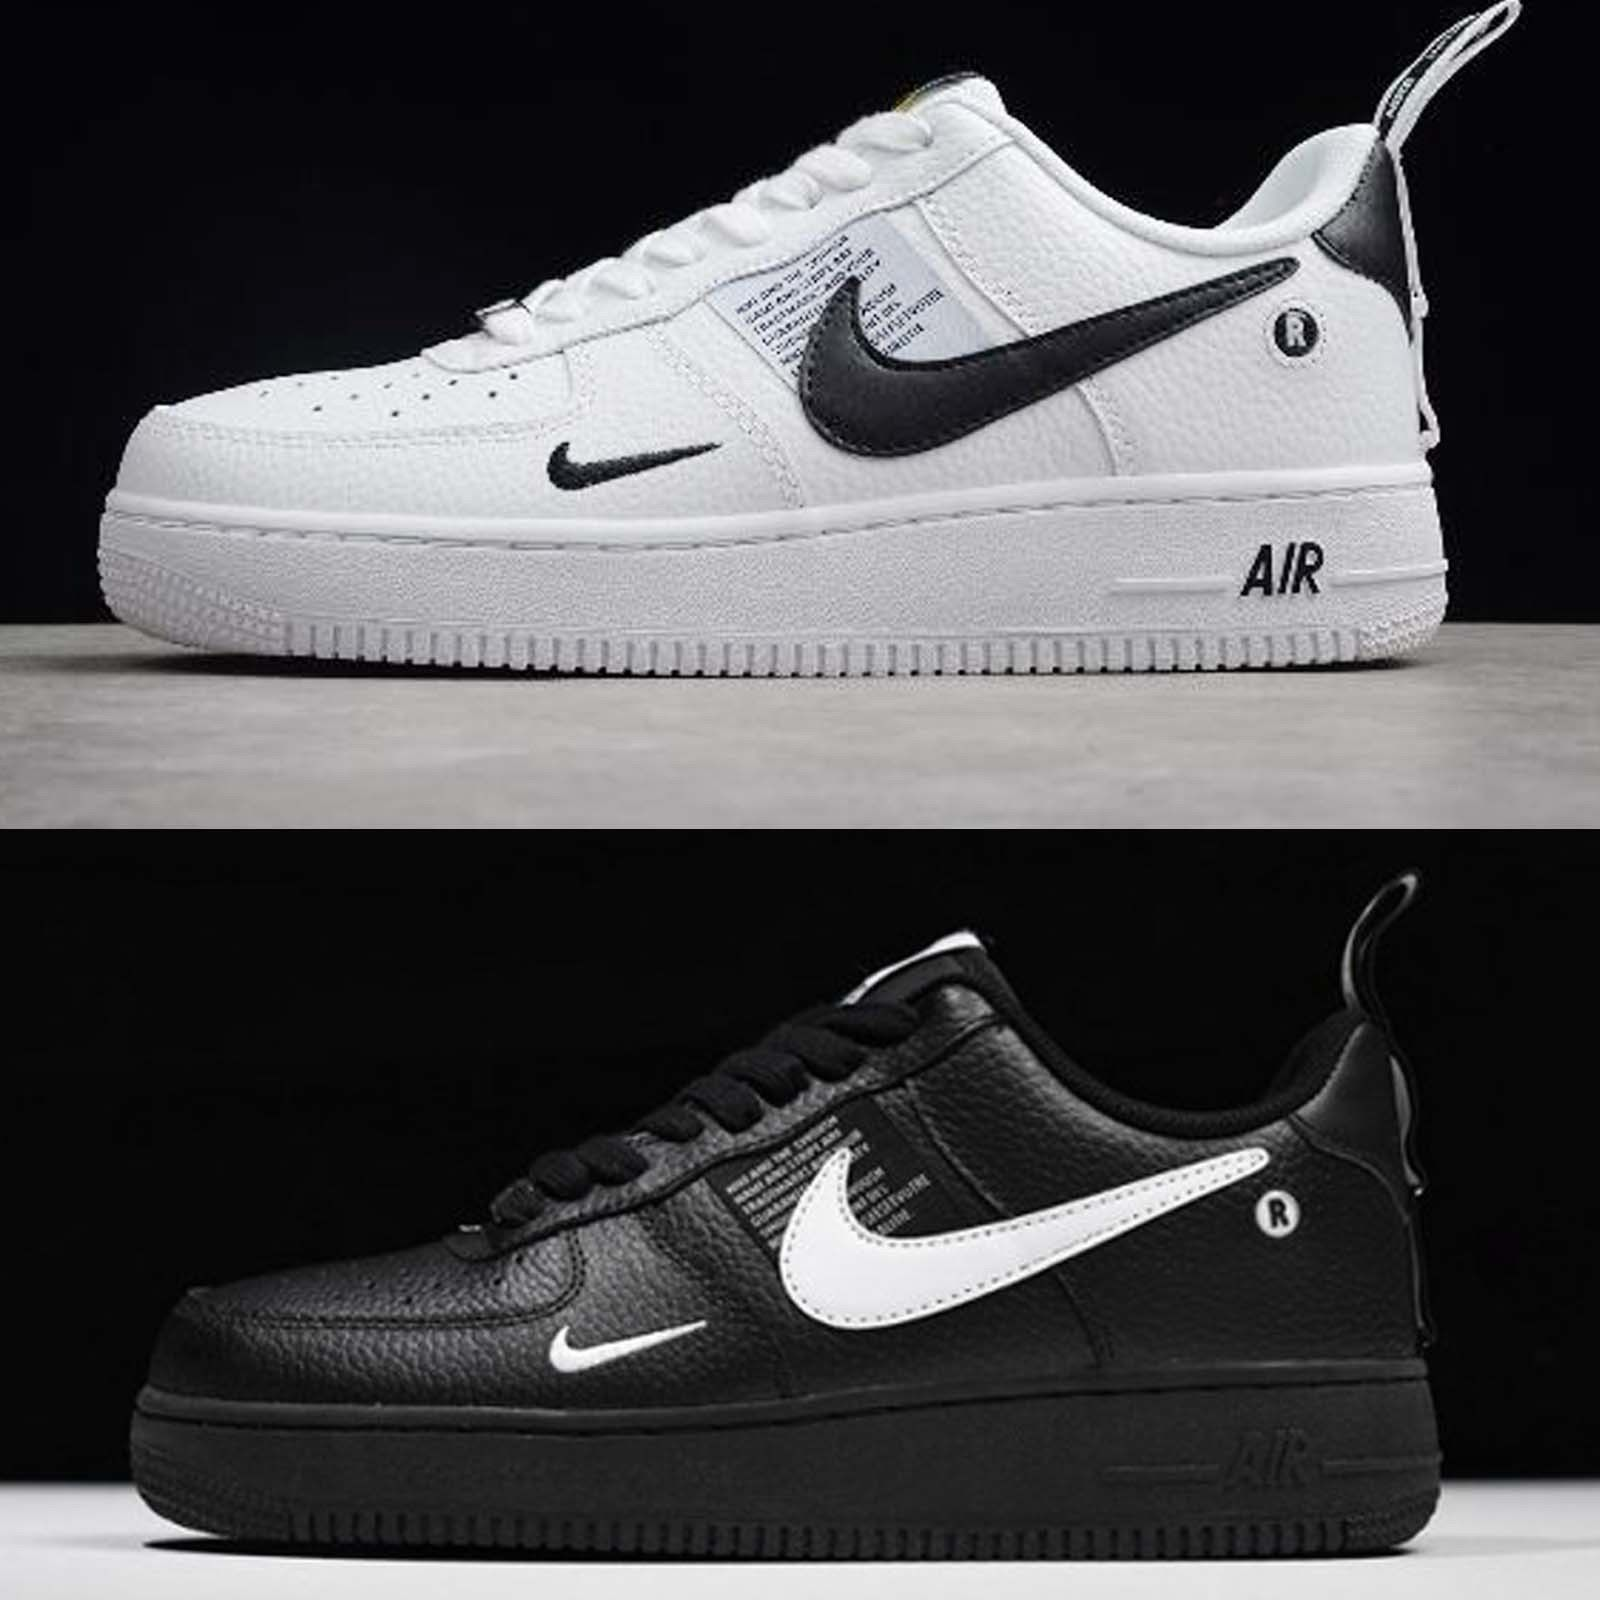 new arrival 21ef4 8b75f Nike Air Force 1 07 LV8 utility back and white